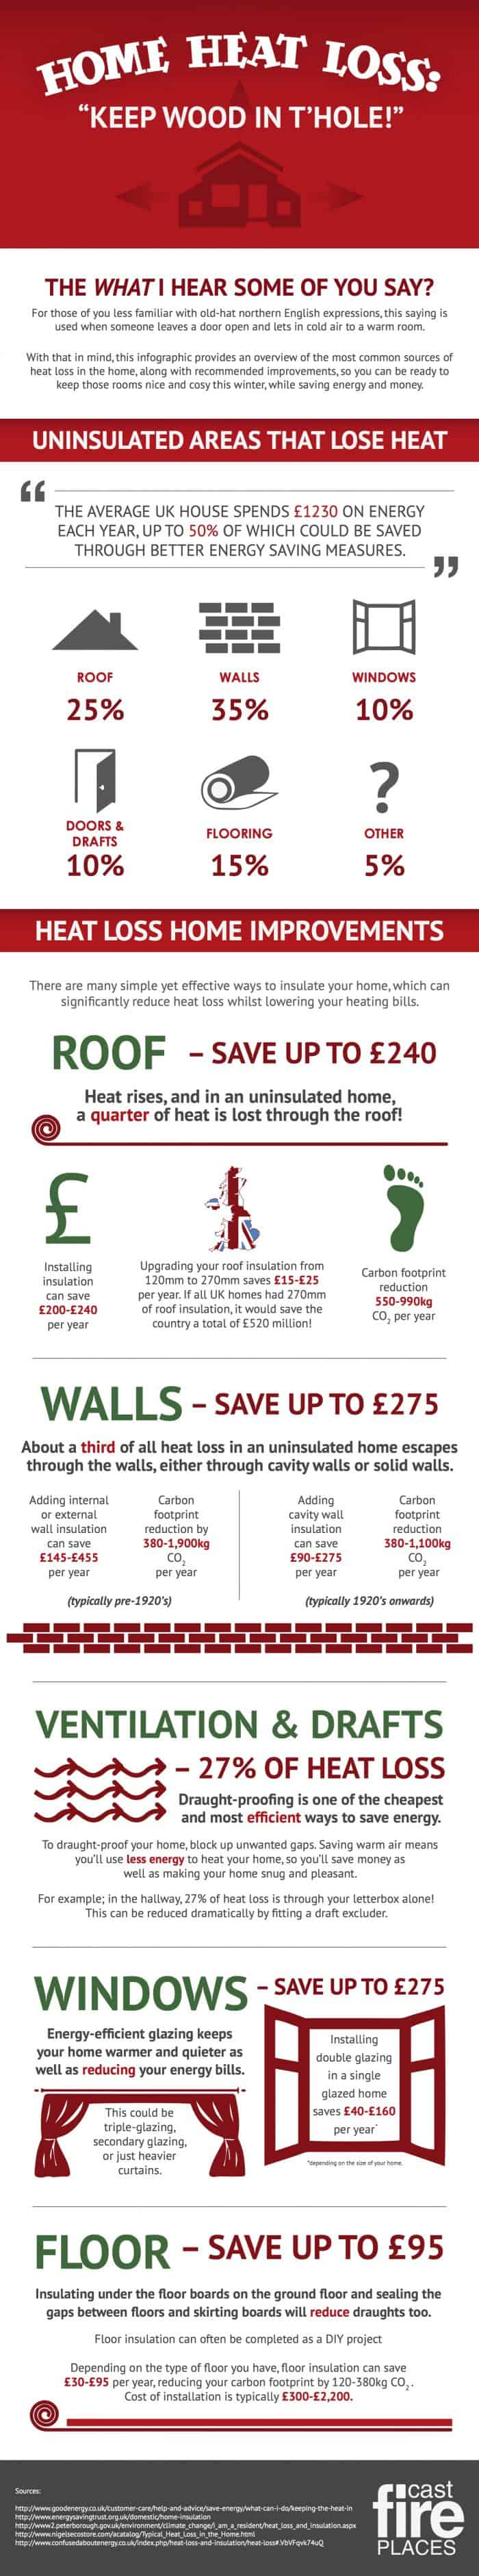 Home heating tips for winter infographic